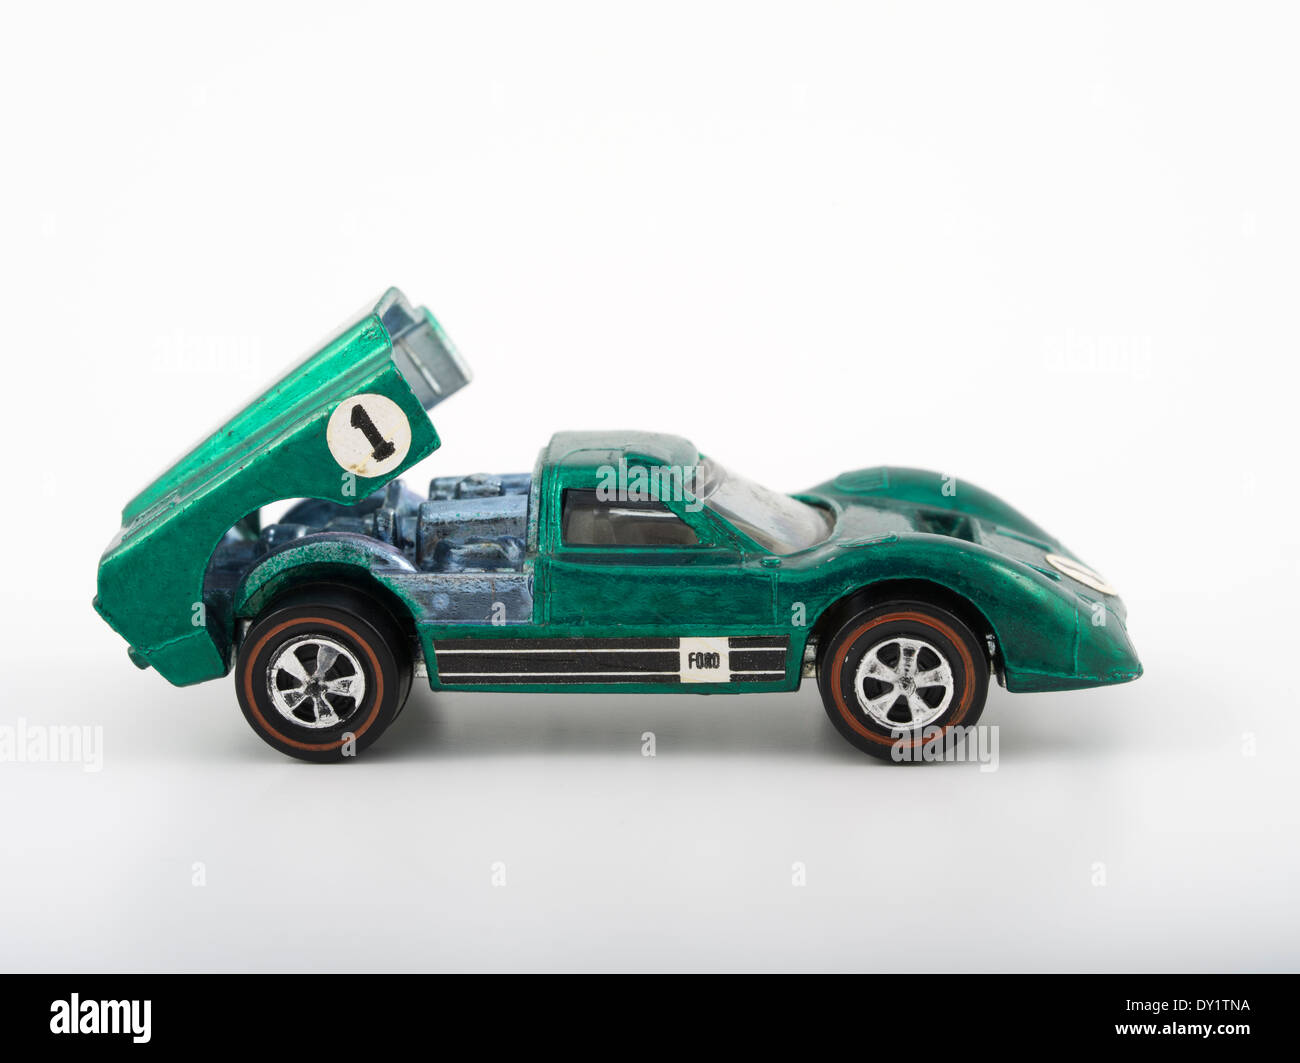 Green ford j car hot wheels die cast toy cars by mattel 1968